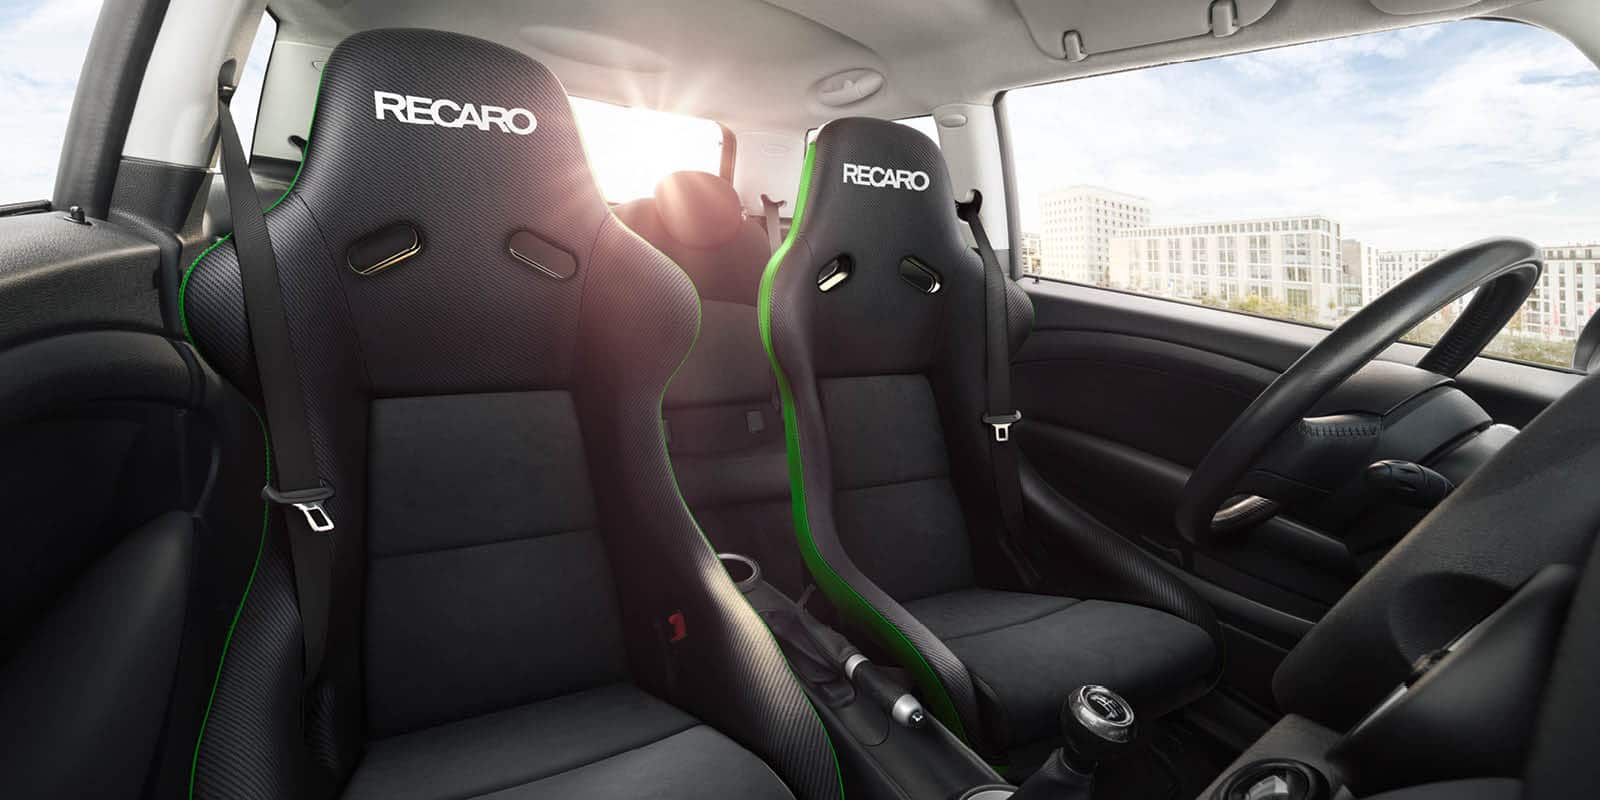 RECARO Automotive Seating – Pole Position Edition 2018, CGI-Motiv